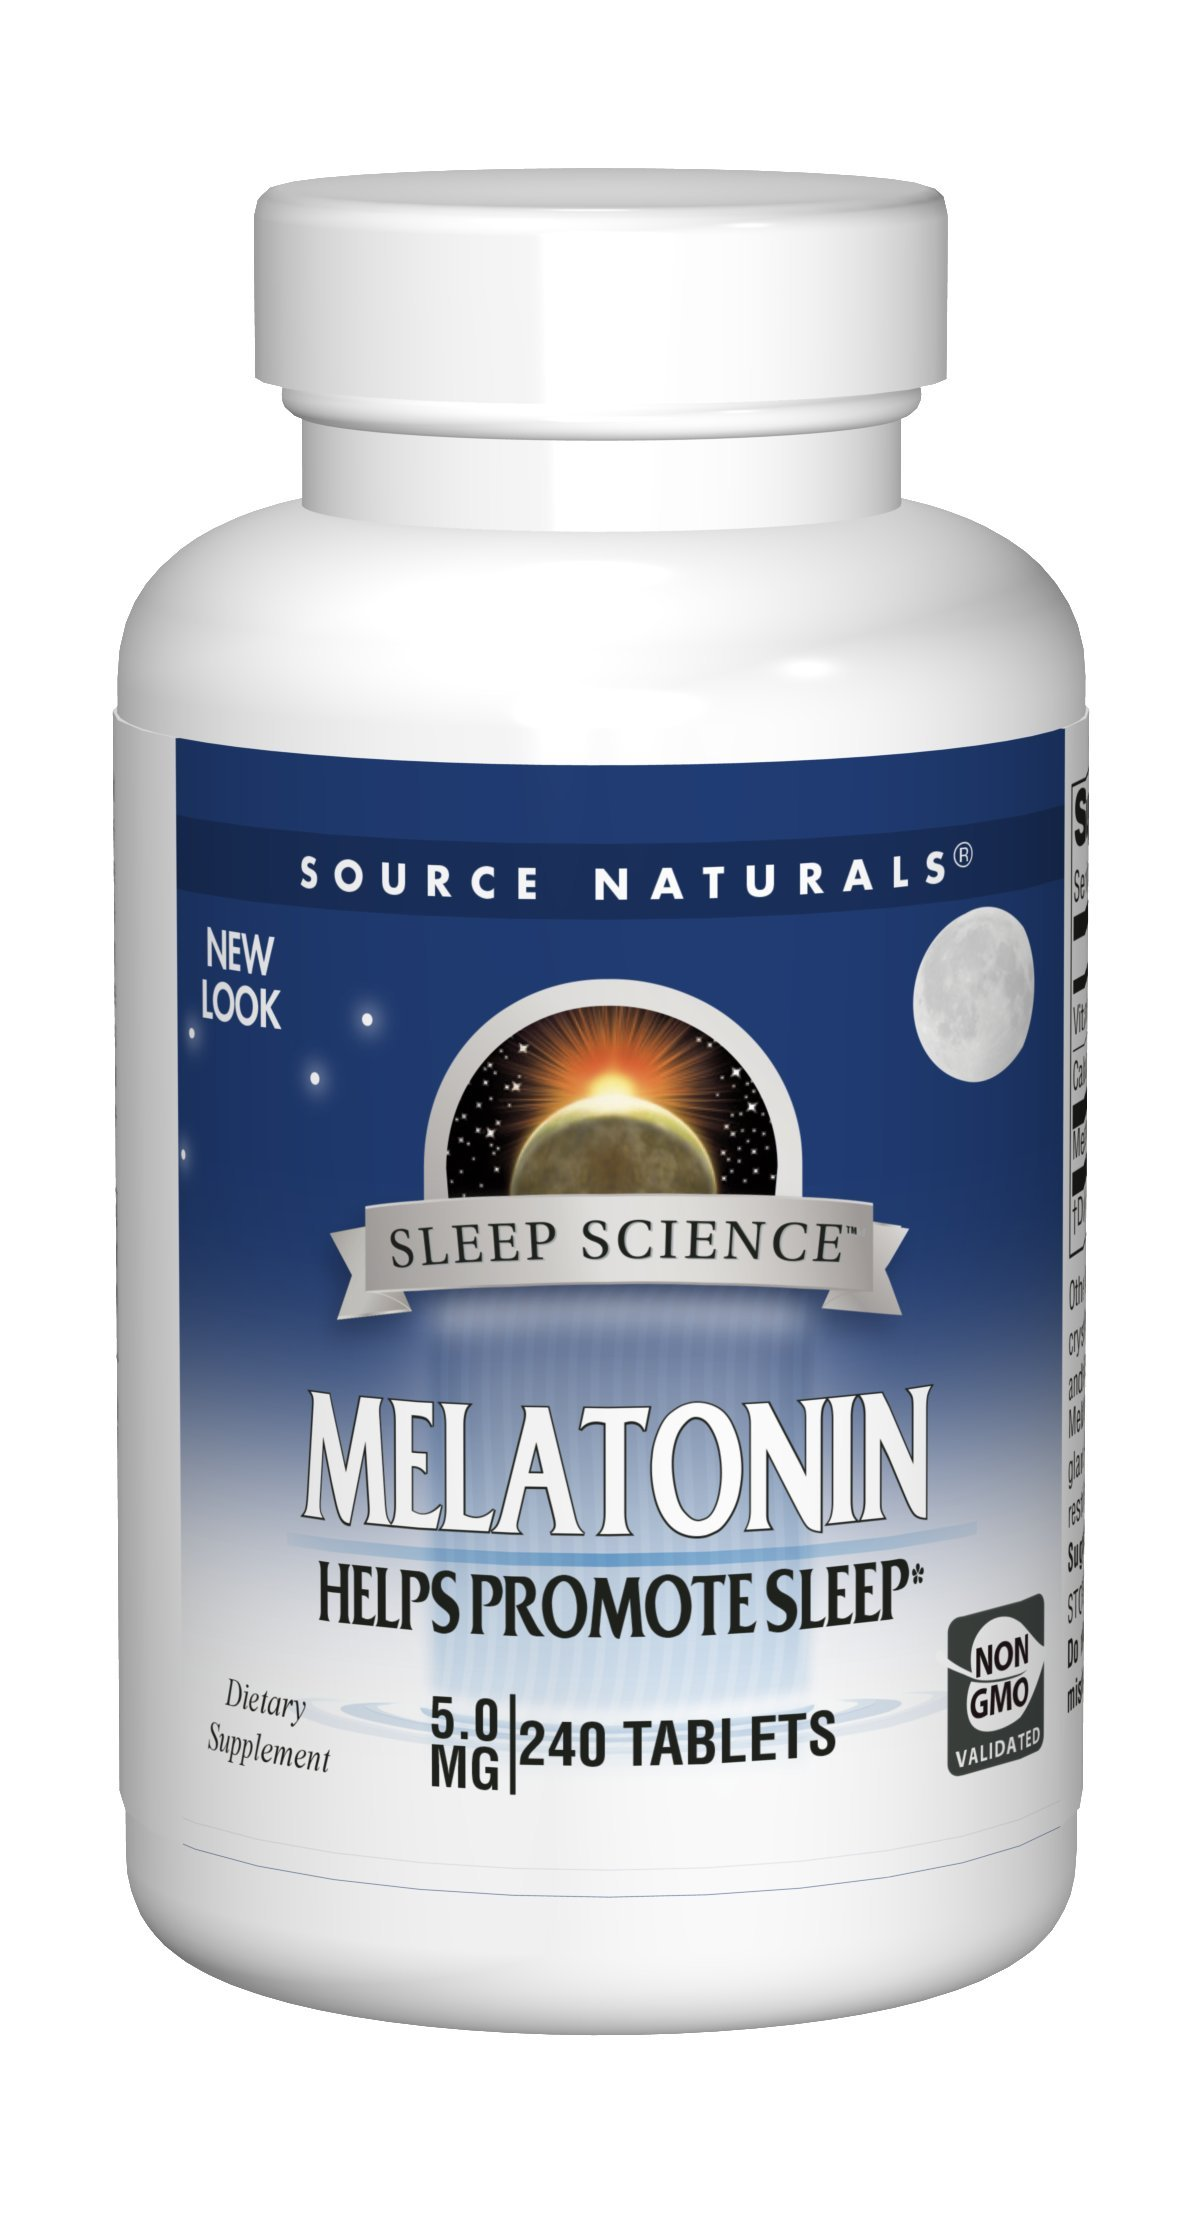 Source Naturals Sleep Science Melatonin 5mg Promotes Sleep and Relaxation - Supports Natural Sleep/Wake